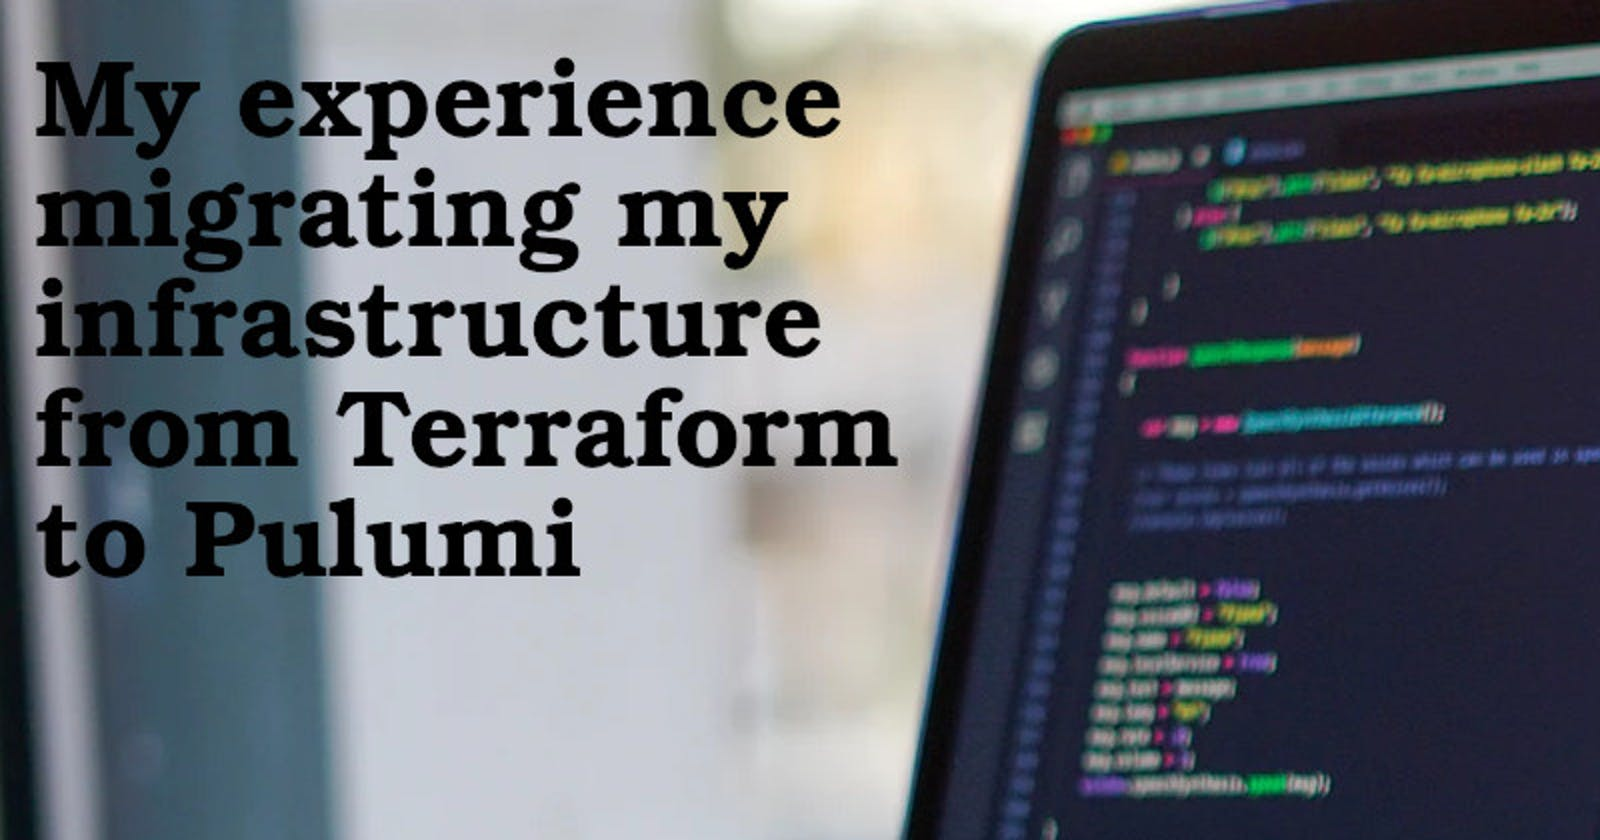 My experience migrating my infrastructure from Terraform to Pulumi